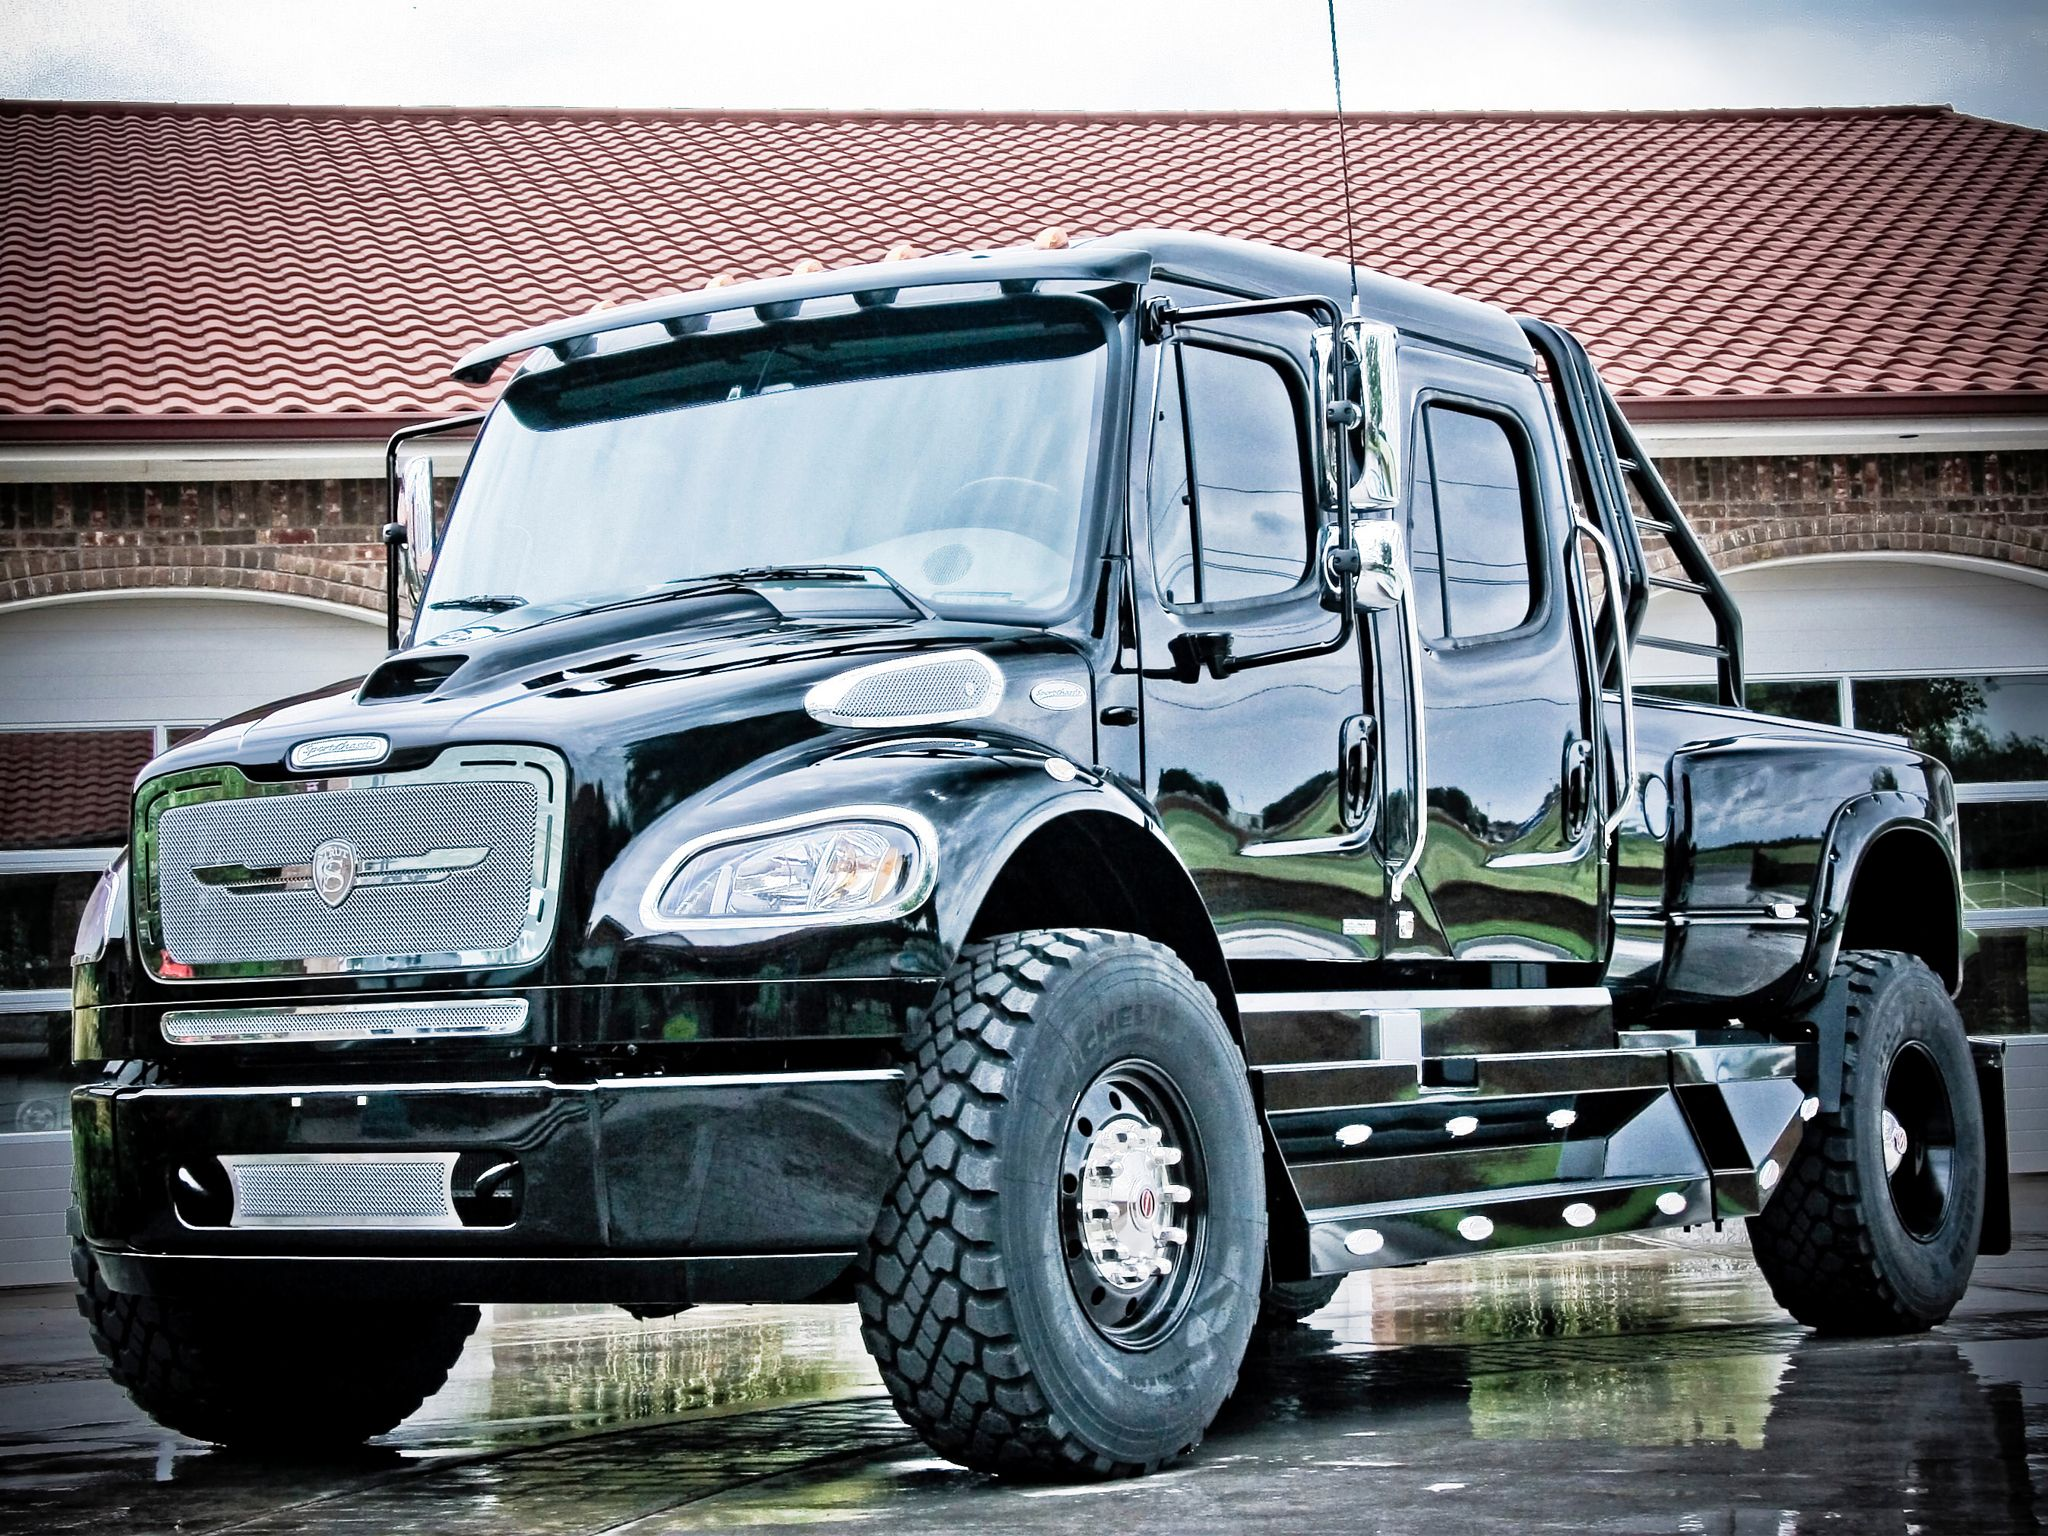 2004 Strut Freightliner Business Class M 2 Sportchassis